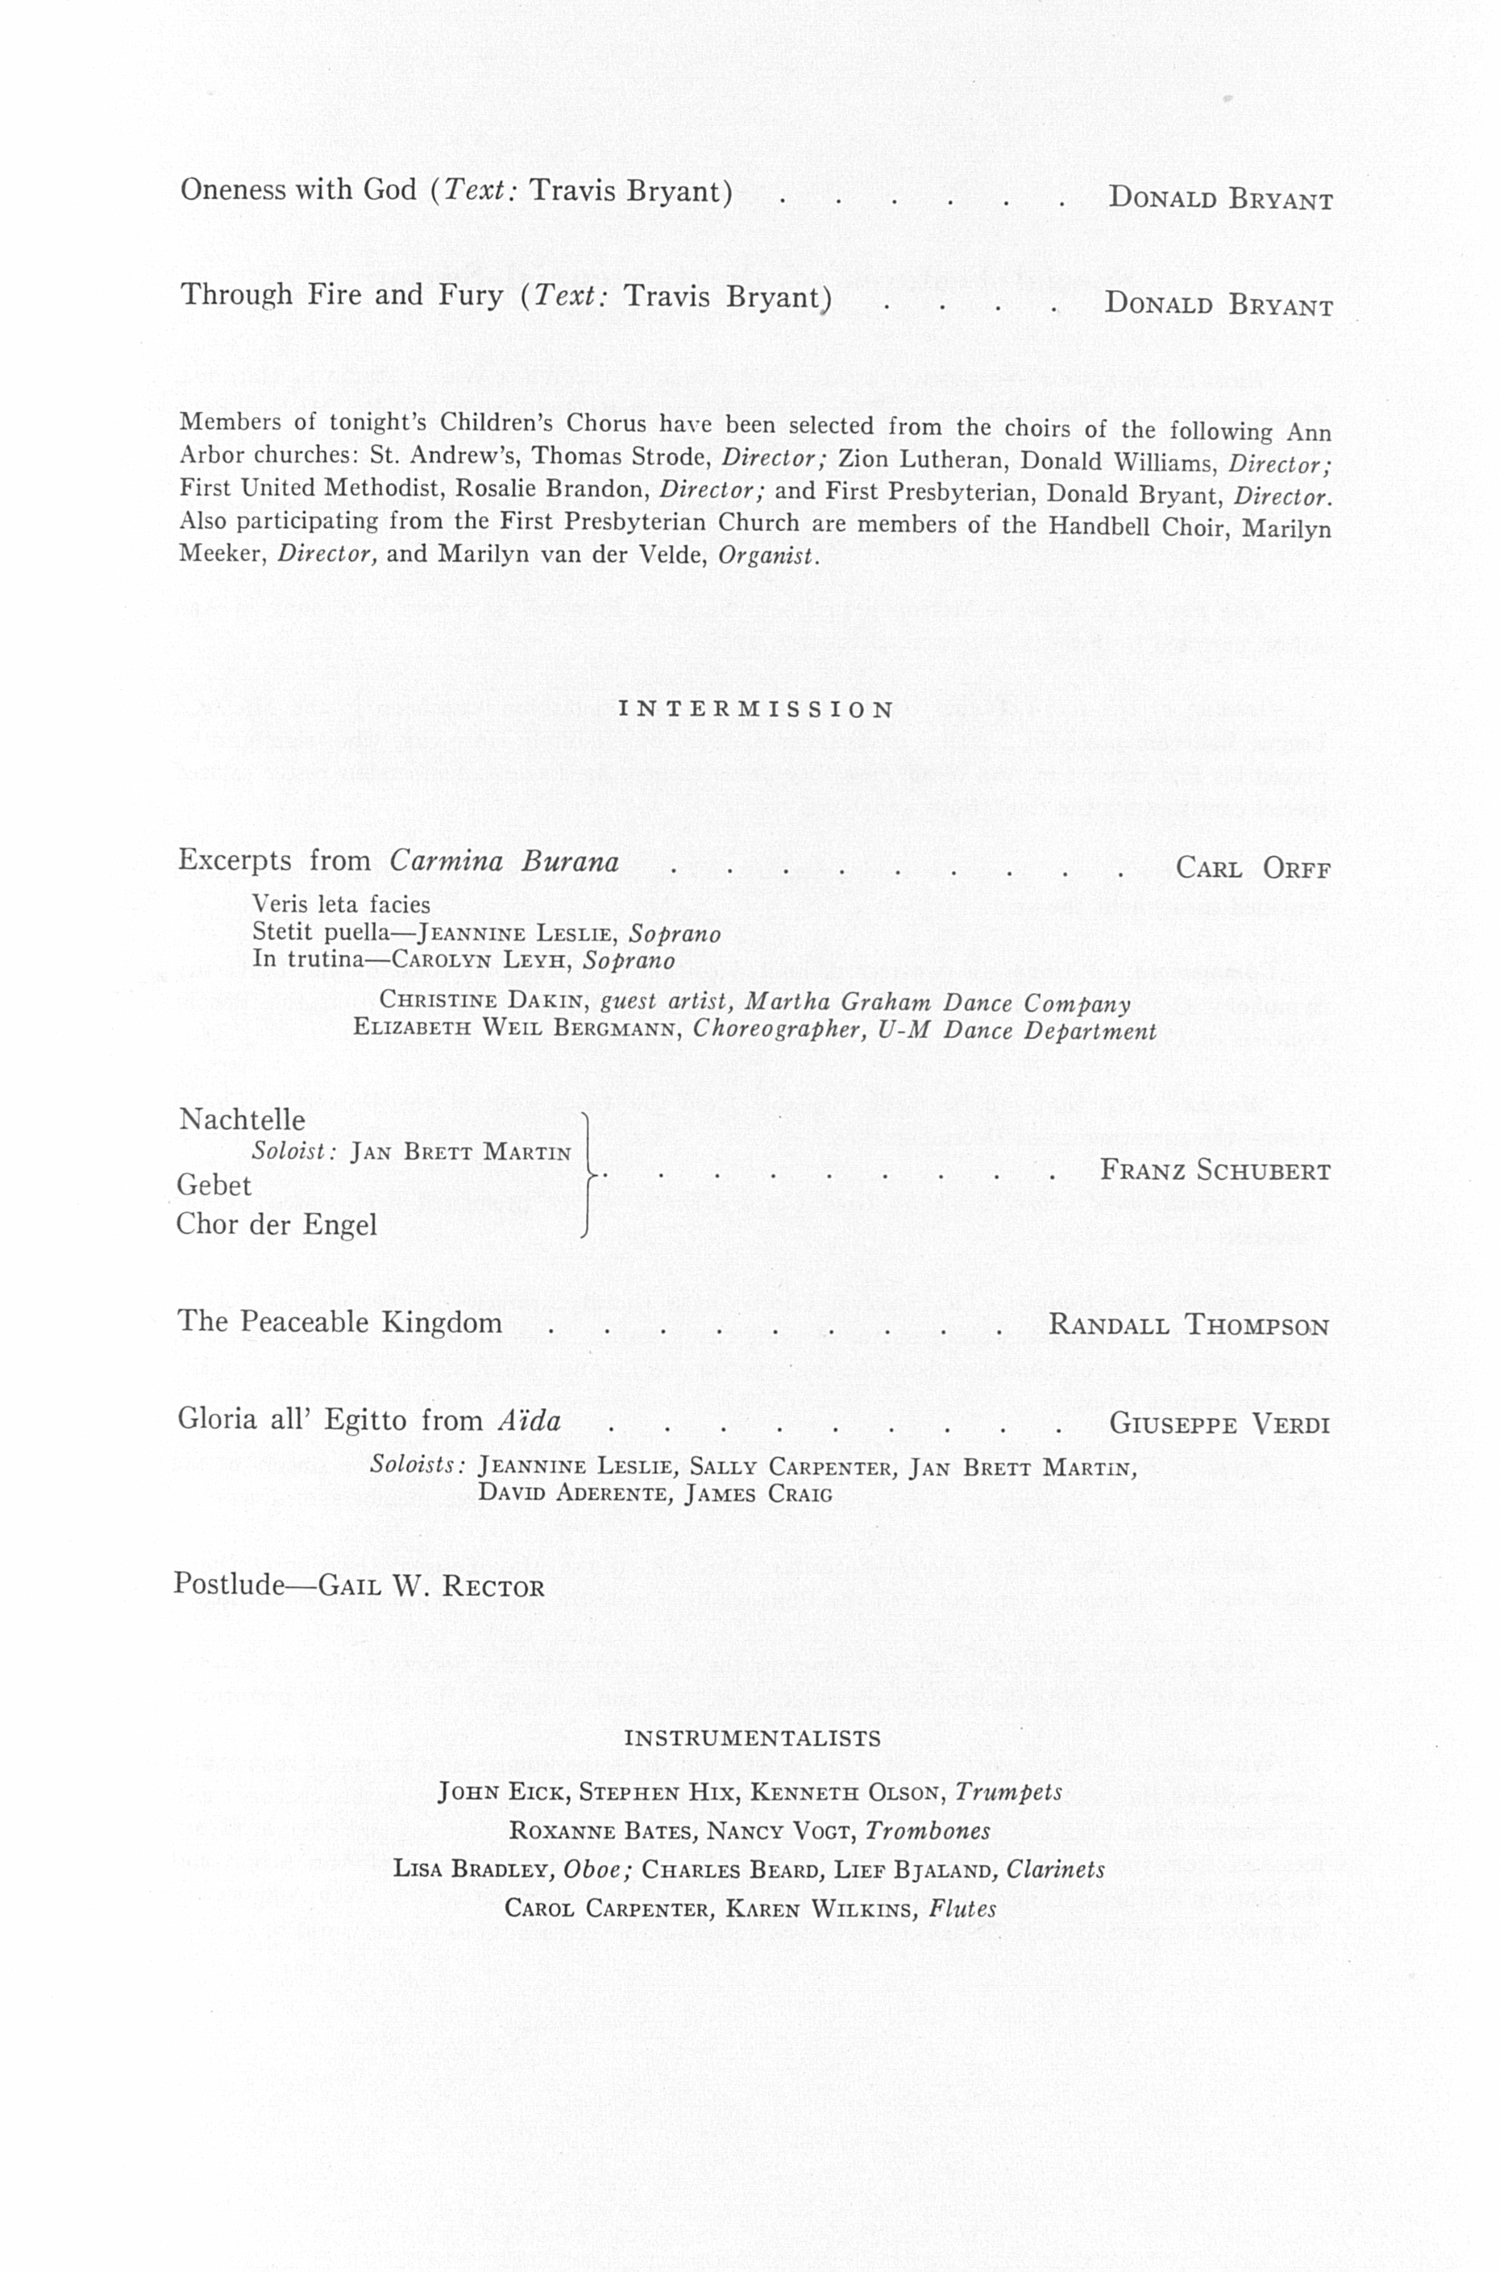 UMS Concert Program, February 24, 1979: Founders Day Celebration Concert --  image